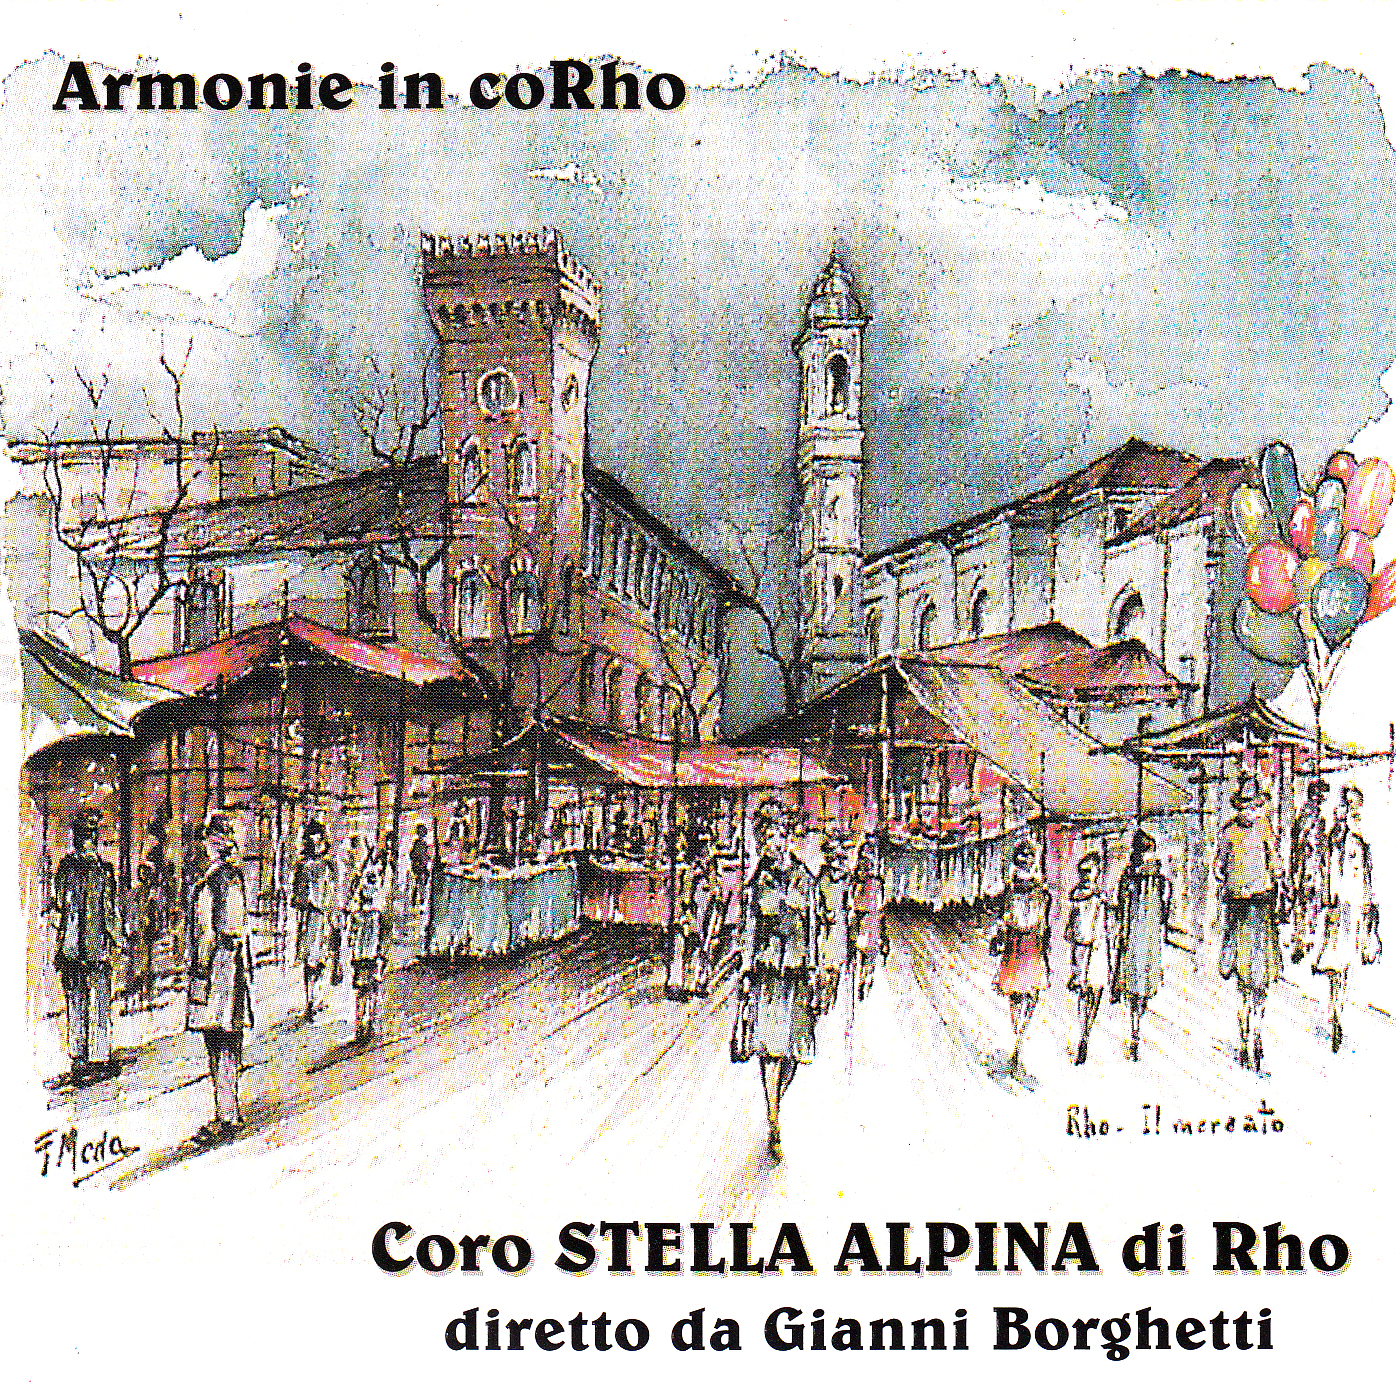 cd armonie in corho fronte